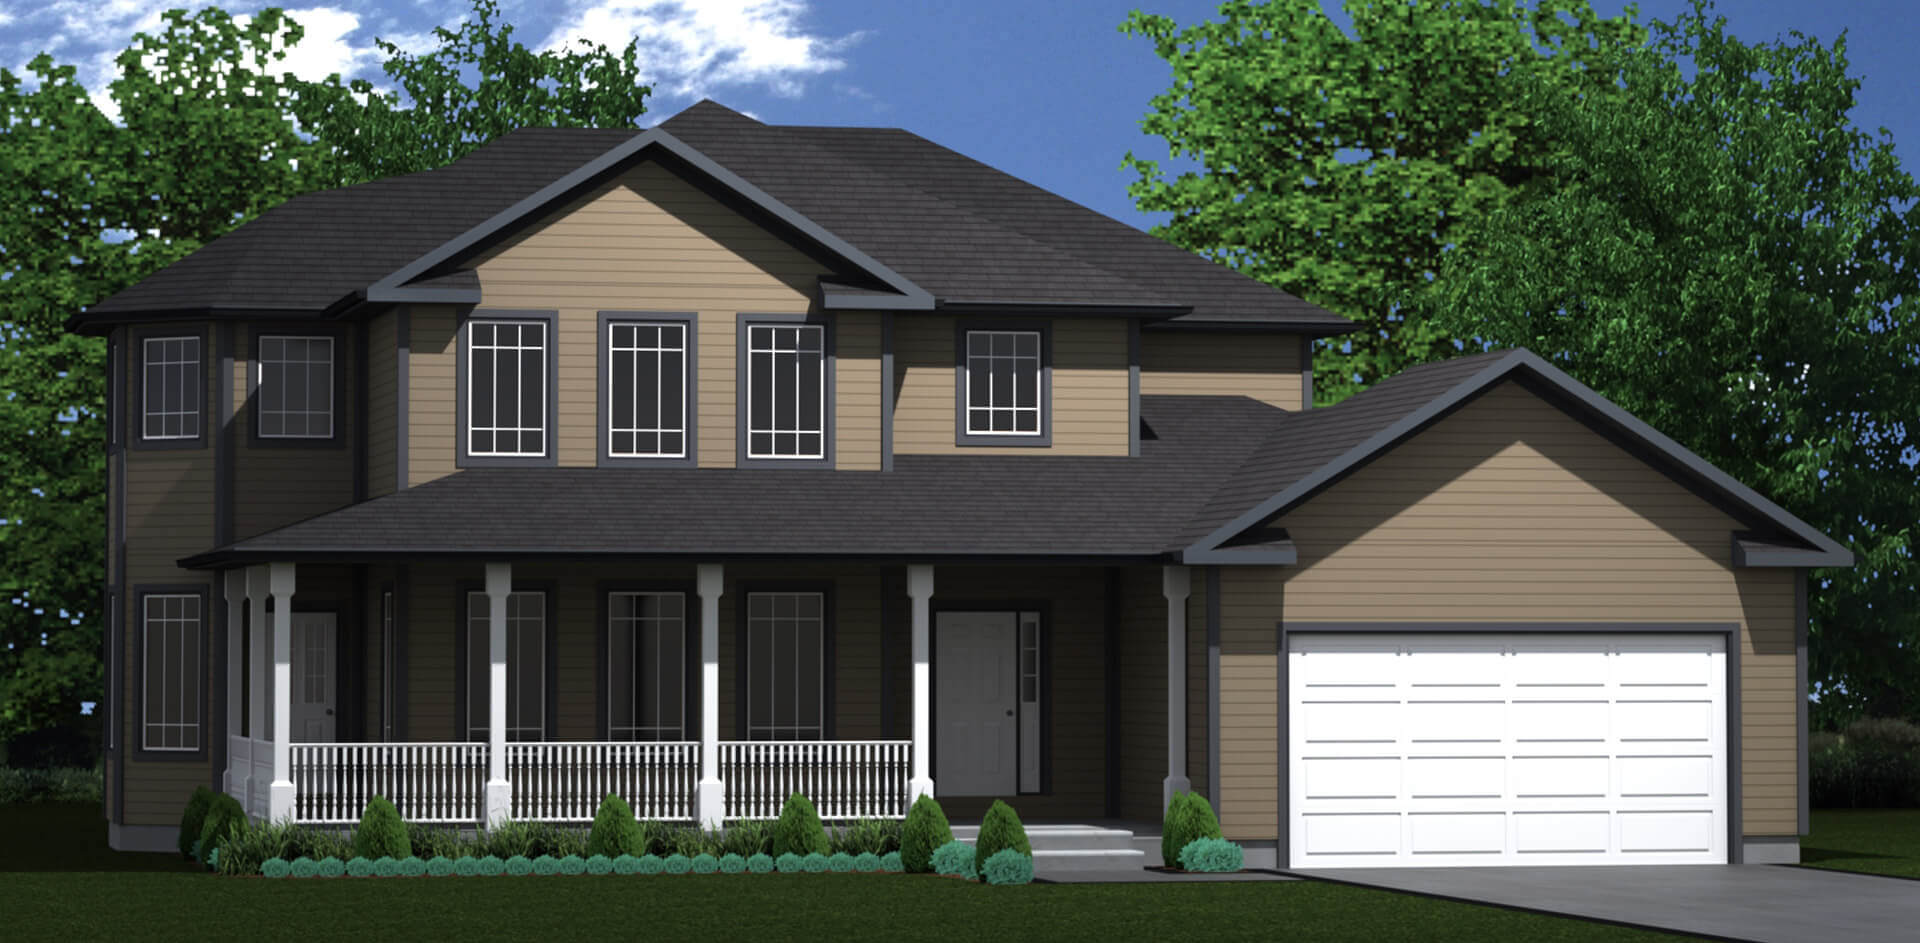 2727 sq.ft. timber mart house 4 bed 3 bath exterior render